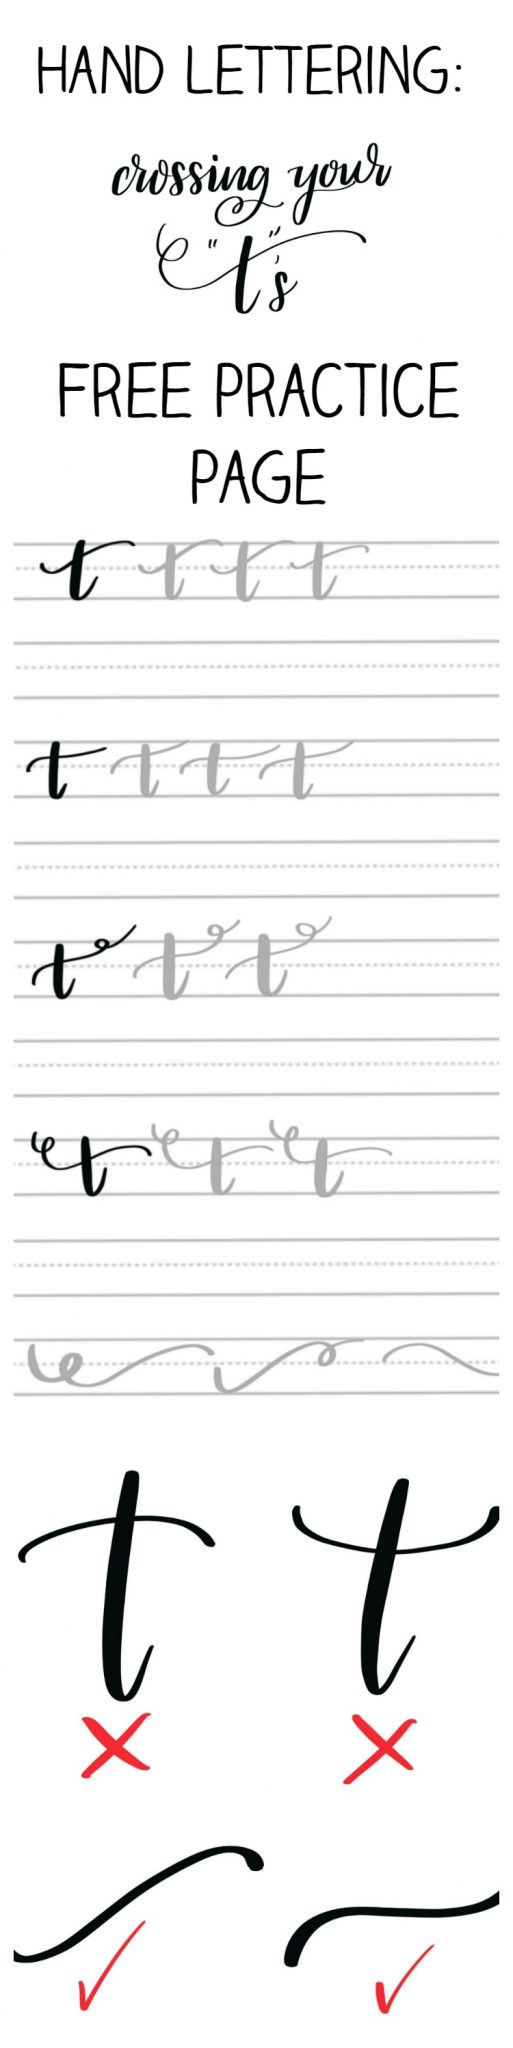 Hand Lettering: Flourishes and Practice Page